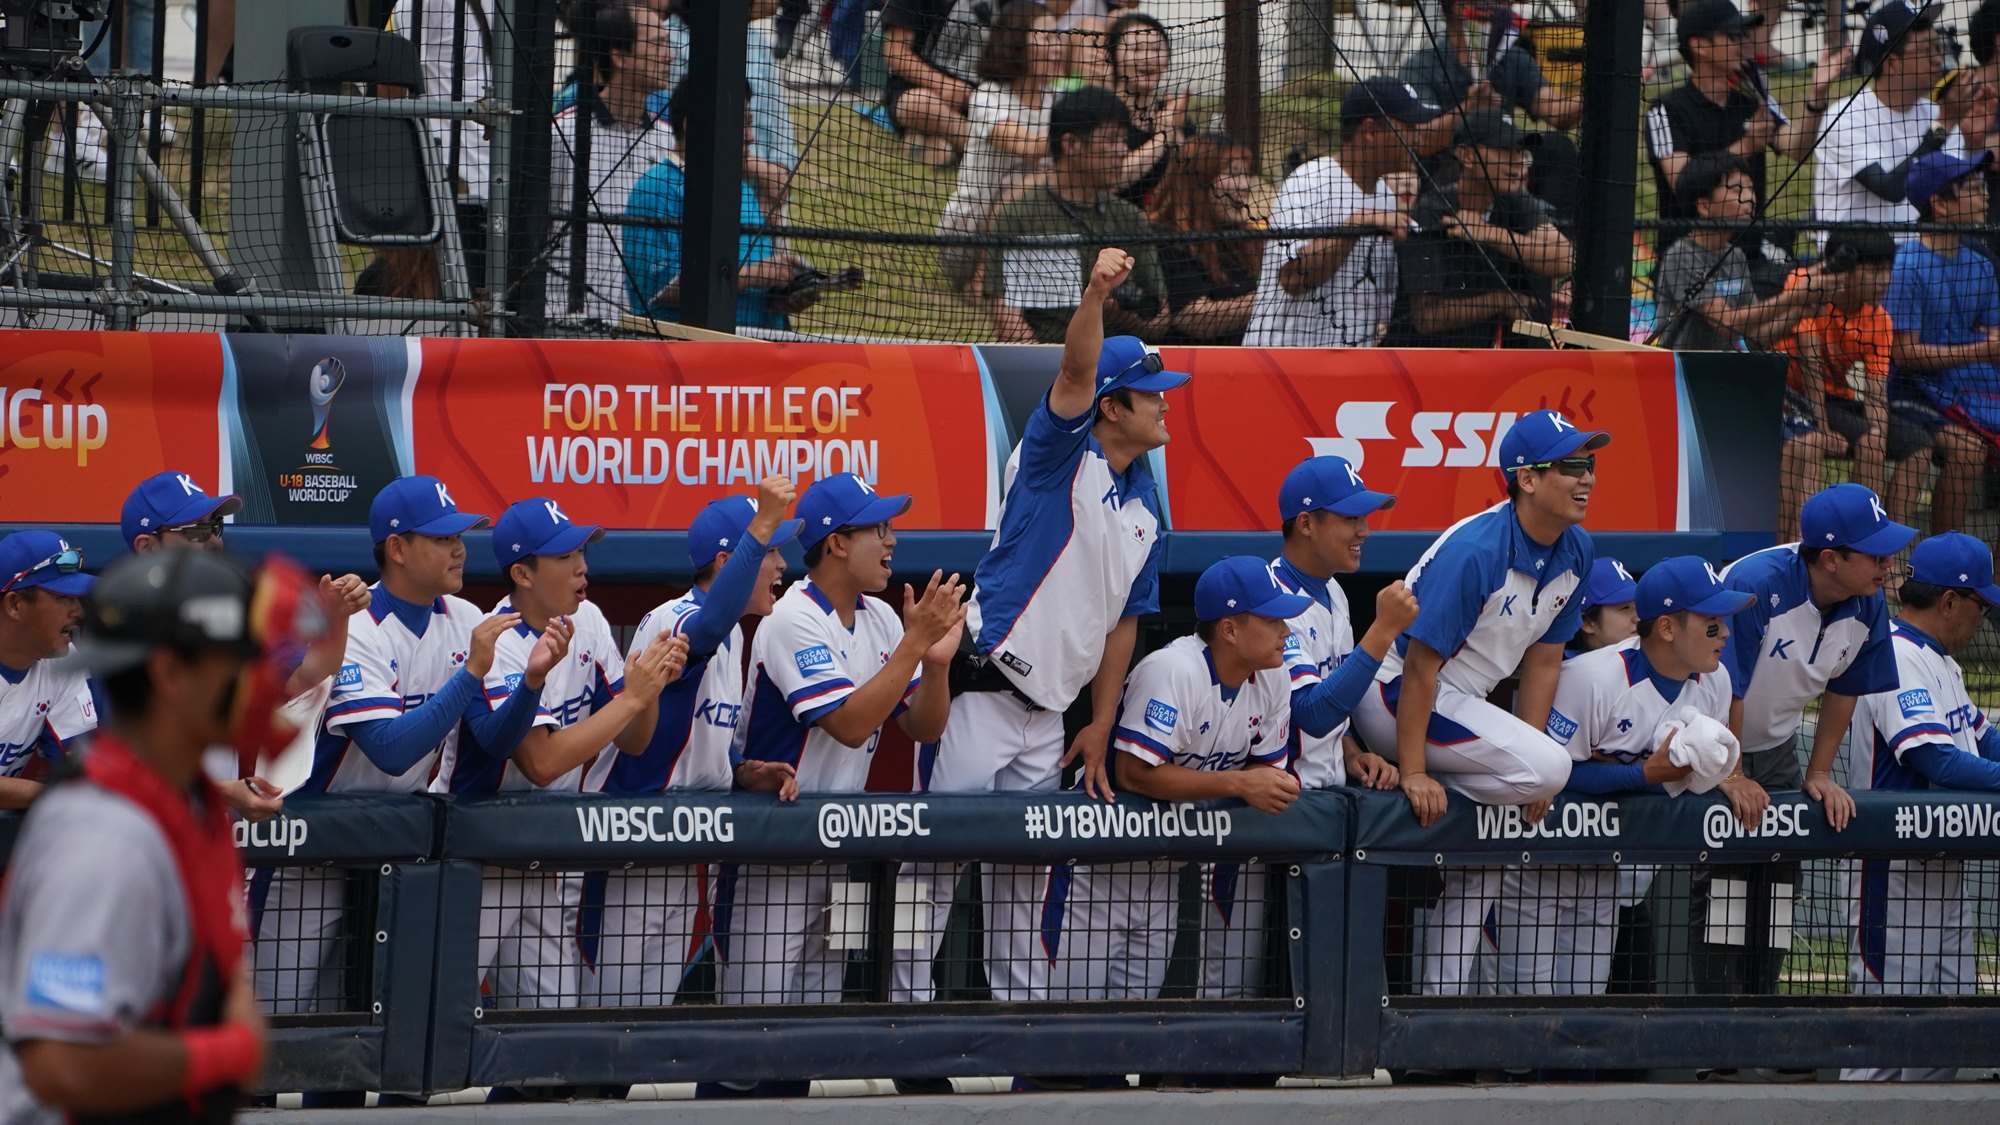 Korea's dug out celebrates